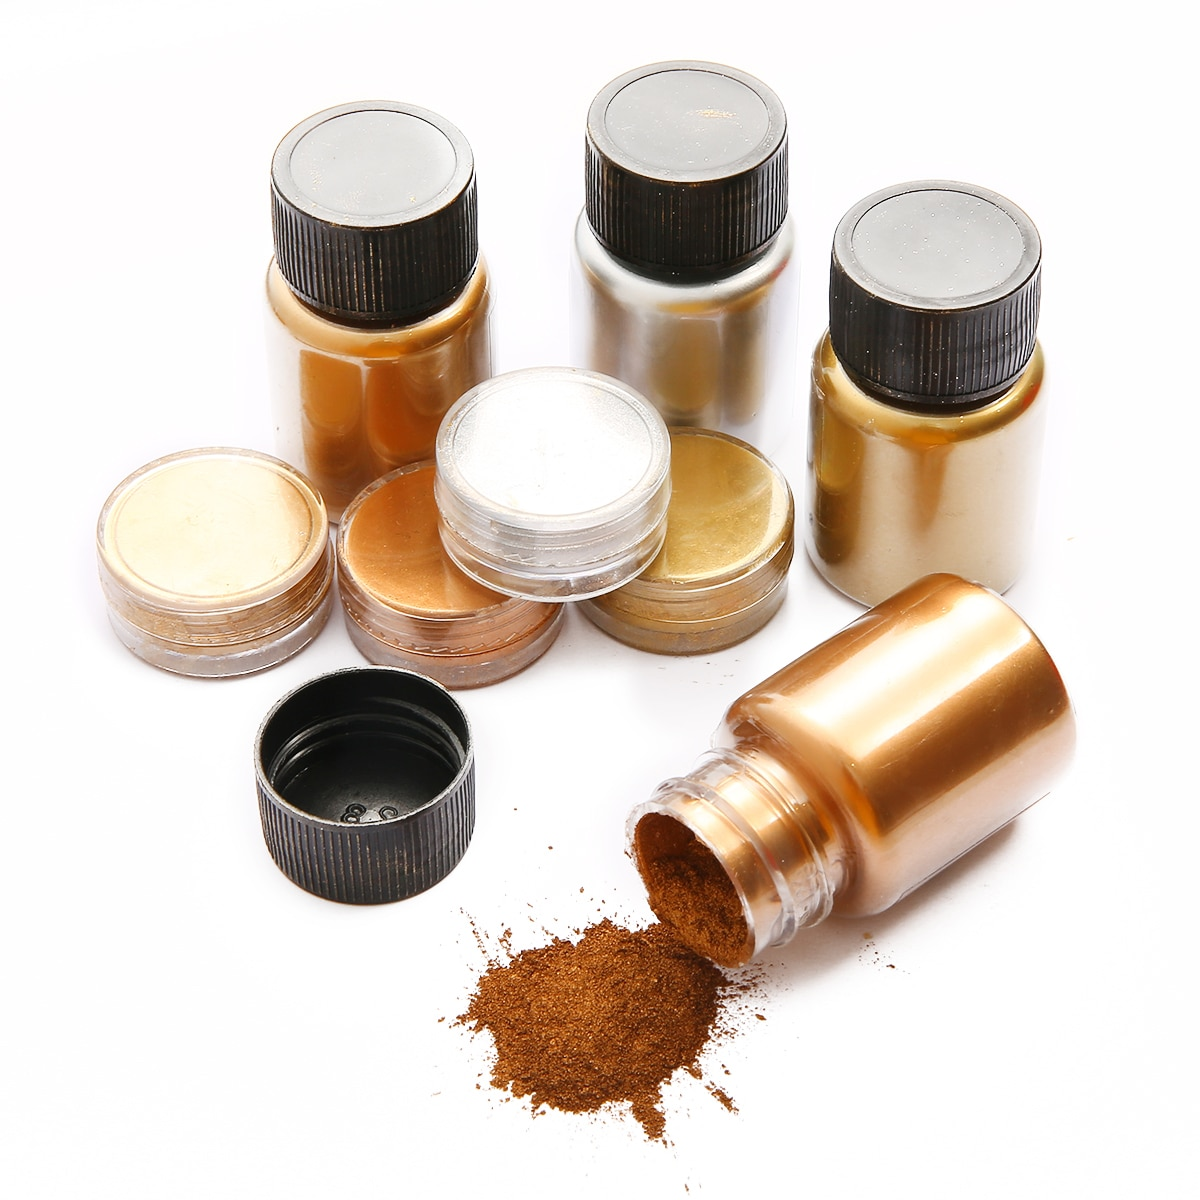 3-25g-shimmer-metallic-gold-silver-color-pigment-powder-colorant-pearl-pigment-dye-uv-resin-epoxy-color-jewelry-findings-making